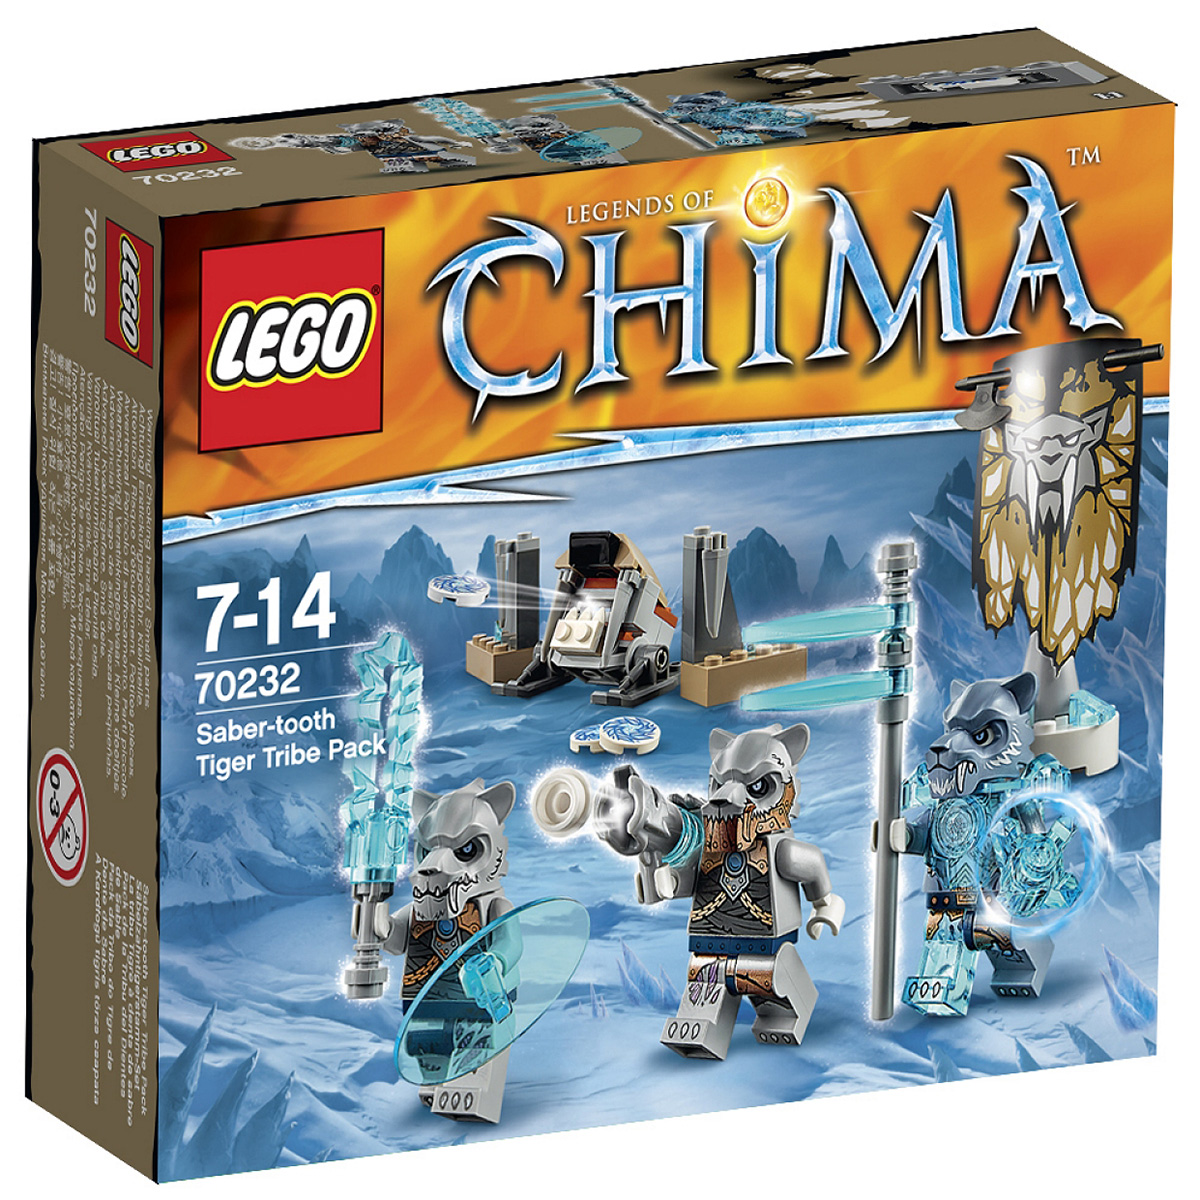 Do choi Lego 70232 – Bo toc ho nanh kiem